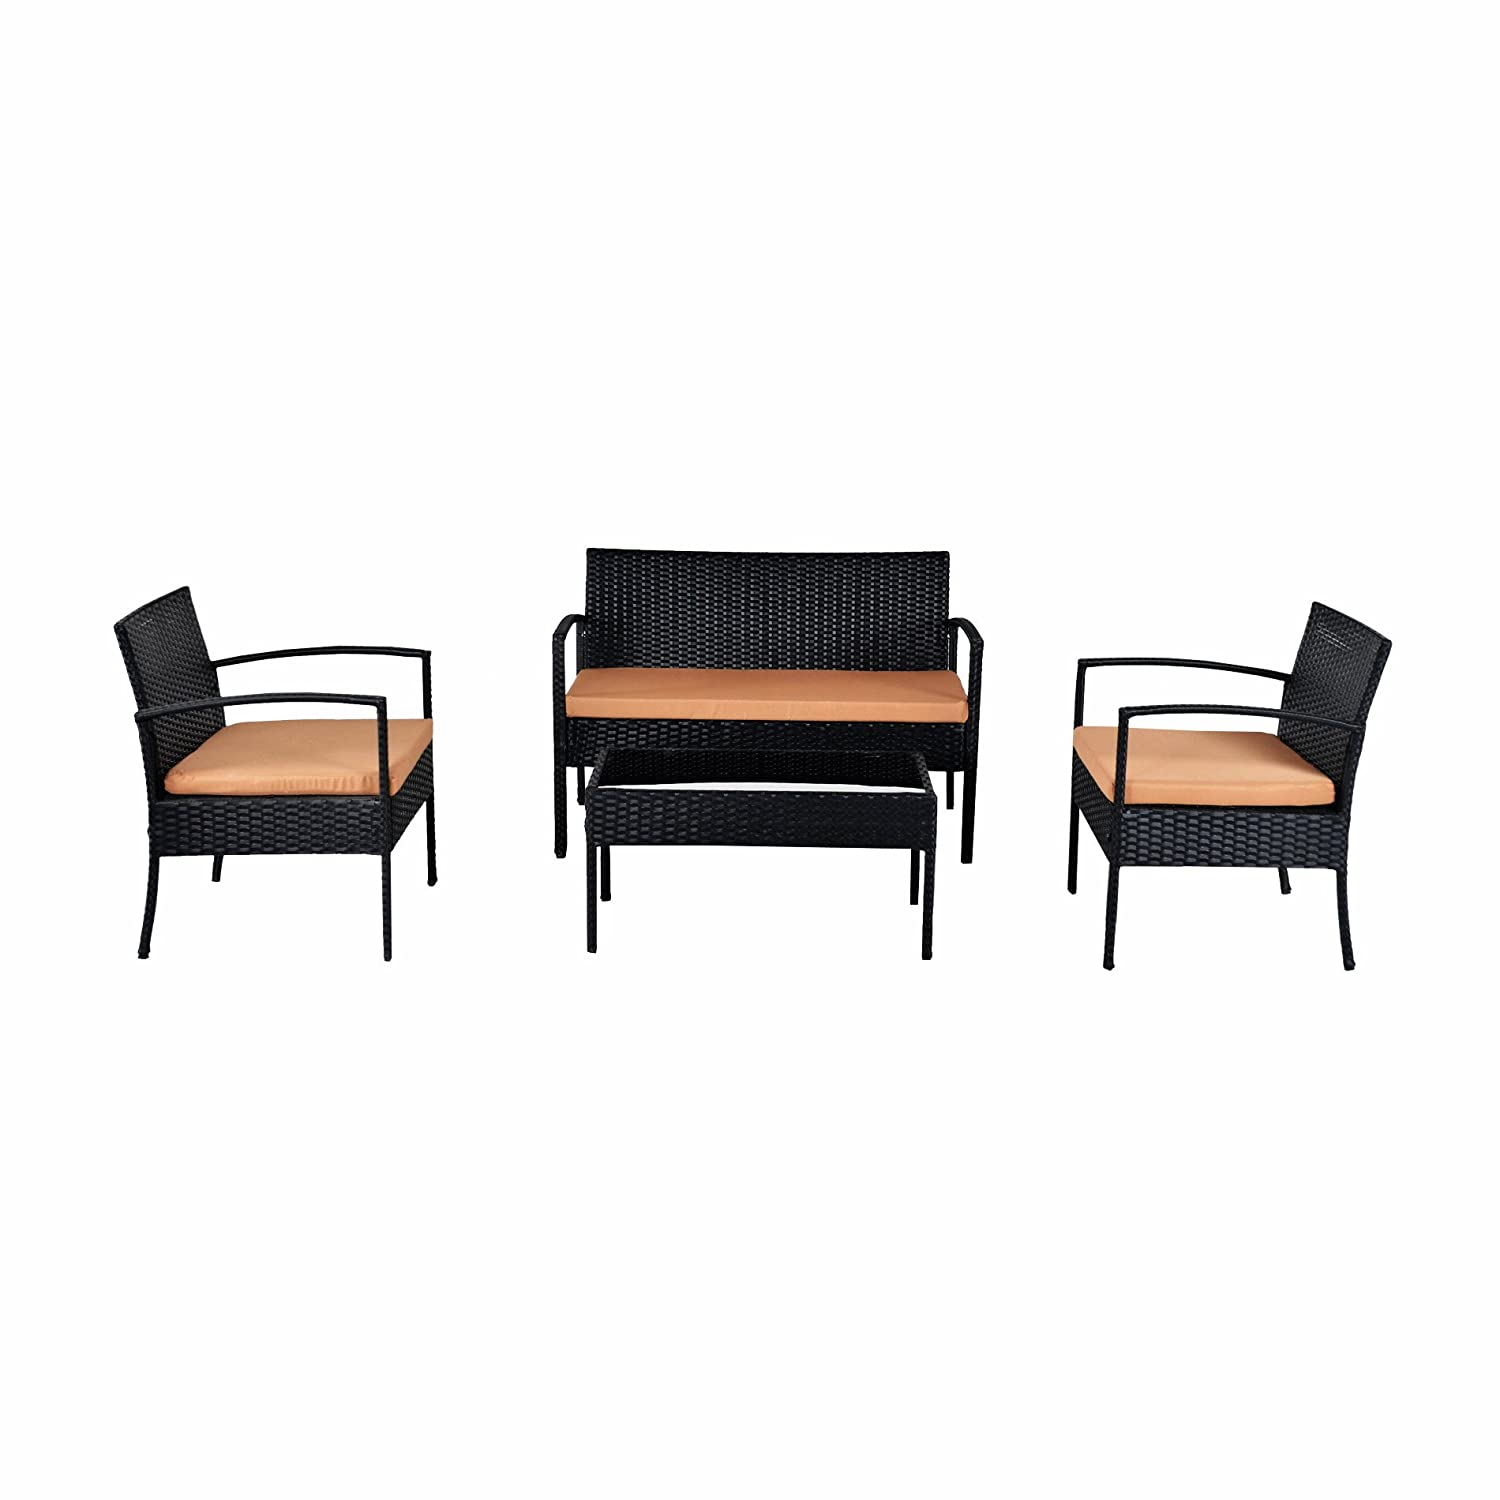 ebs classic outdoor garten schwarz rattan rattan m bel terrasse set sofa 4 st ck 3 st hle mit. Black Bedroom Furniture Sets. Home Design Ideas